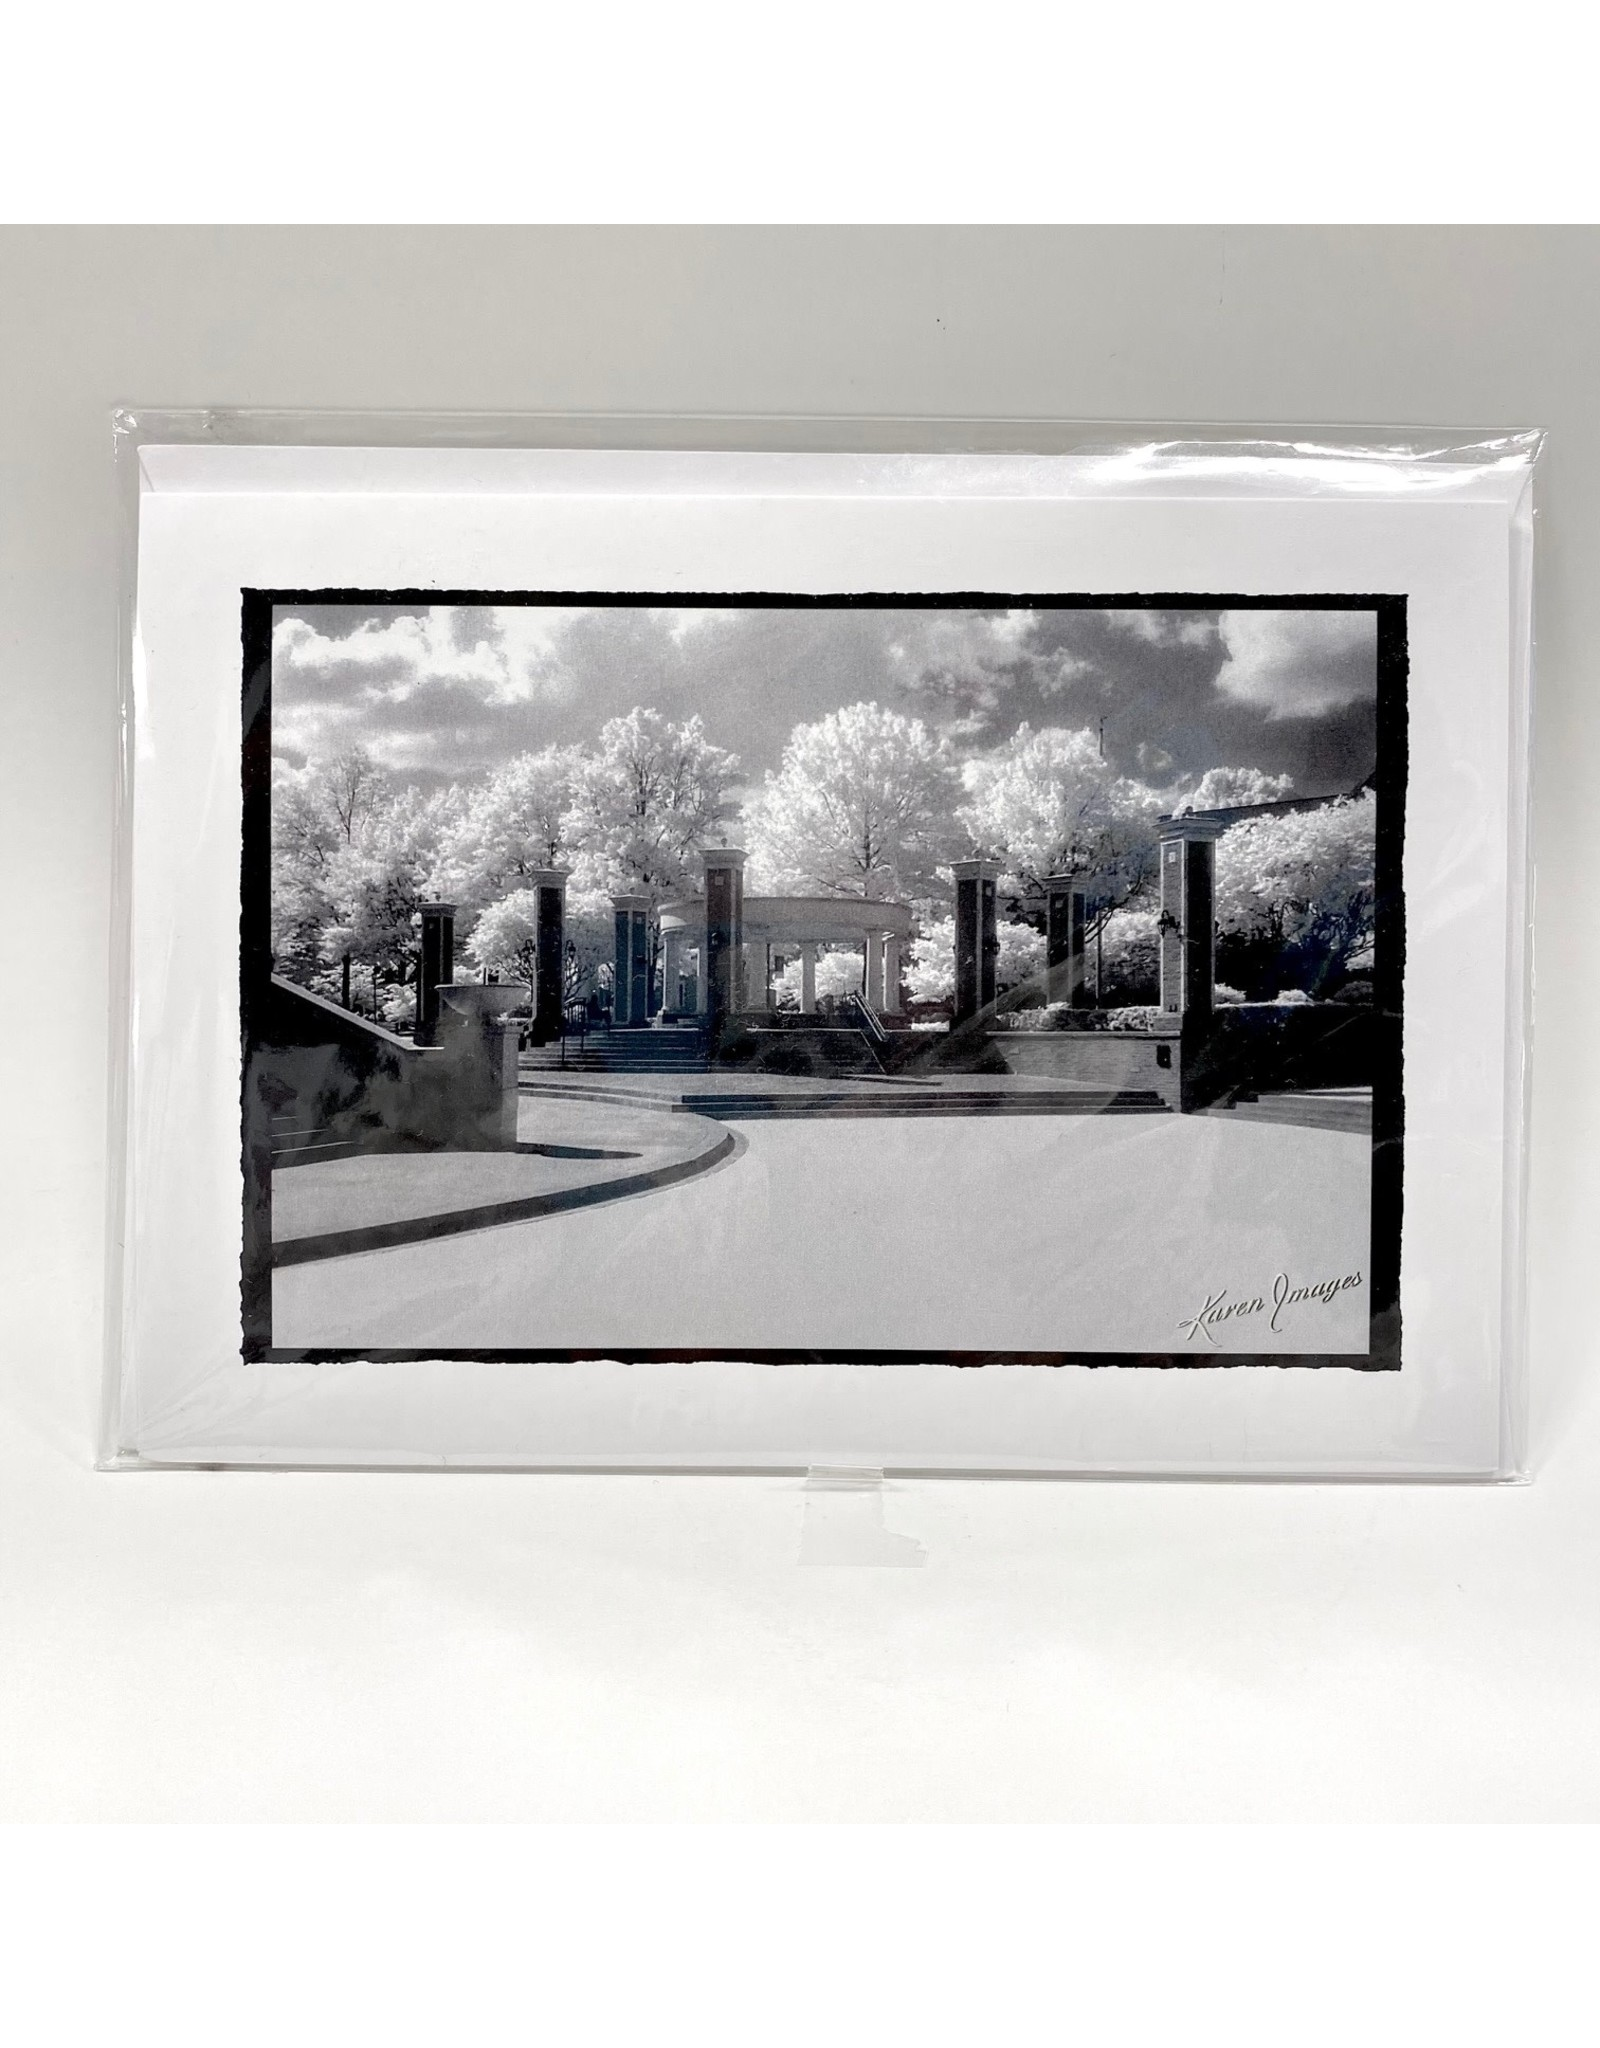 Karen Images Blank Card with Woodward Images